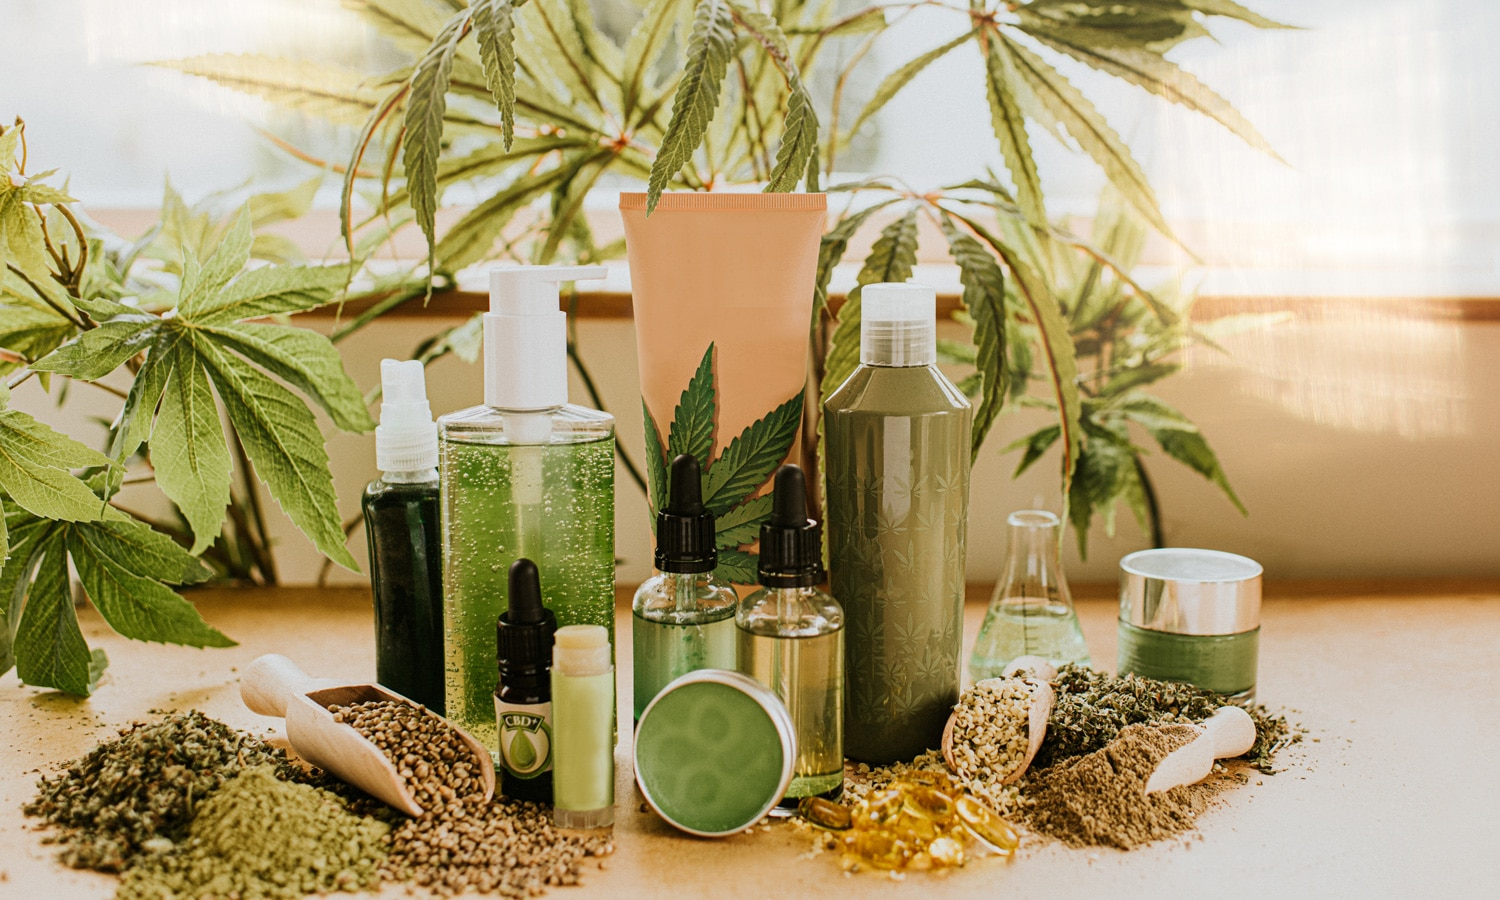 Dermatologists Chime In On The Effectiveness Of CBD Beauty Products